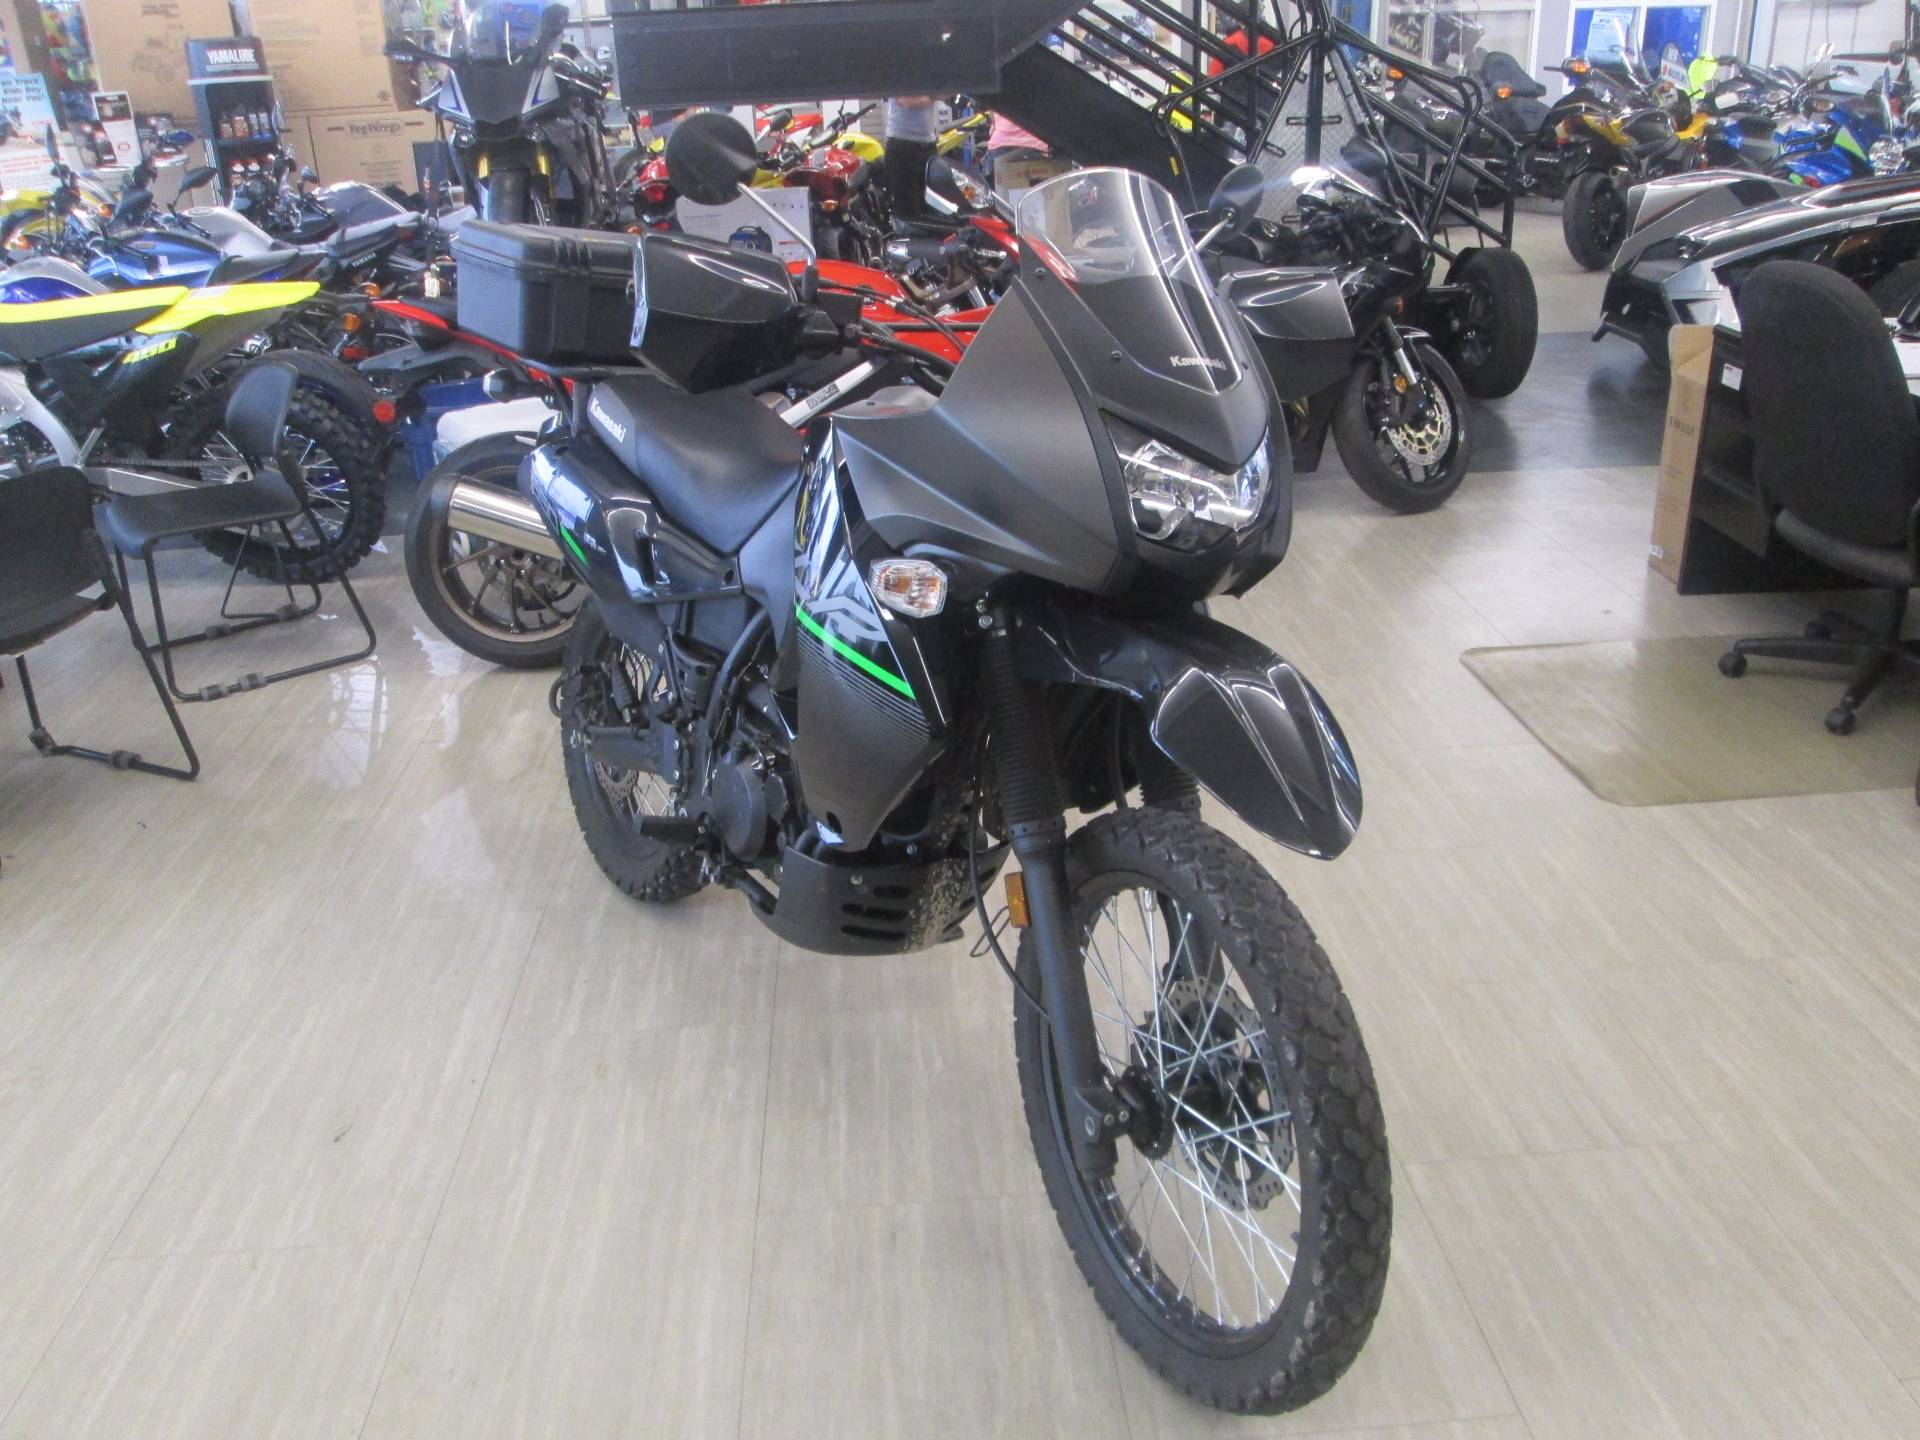 2015 Kawasaki KLR 650 in Dearborn Heights, Michigan